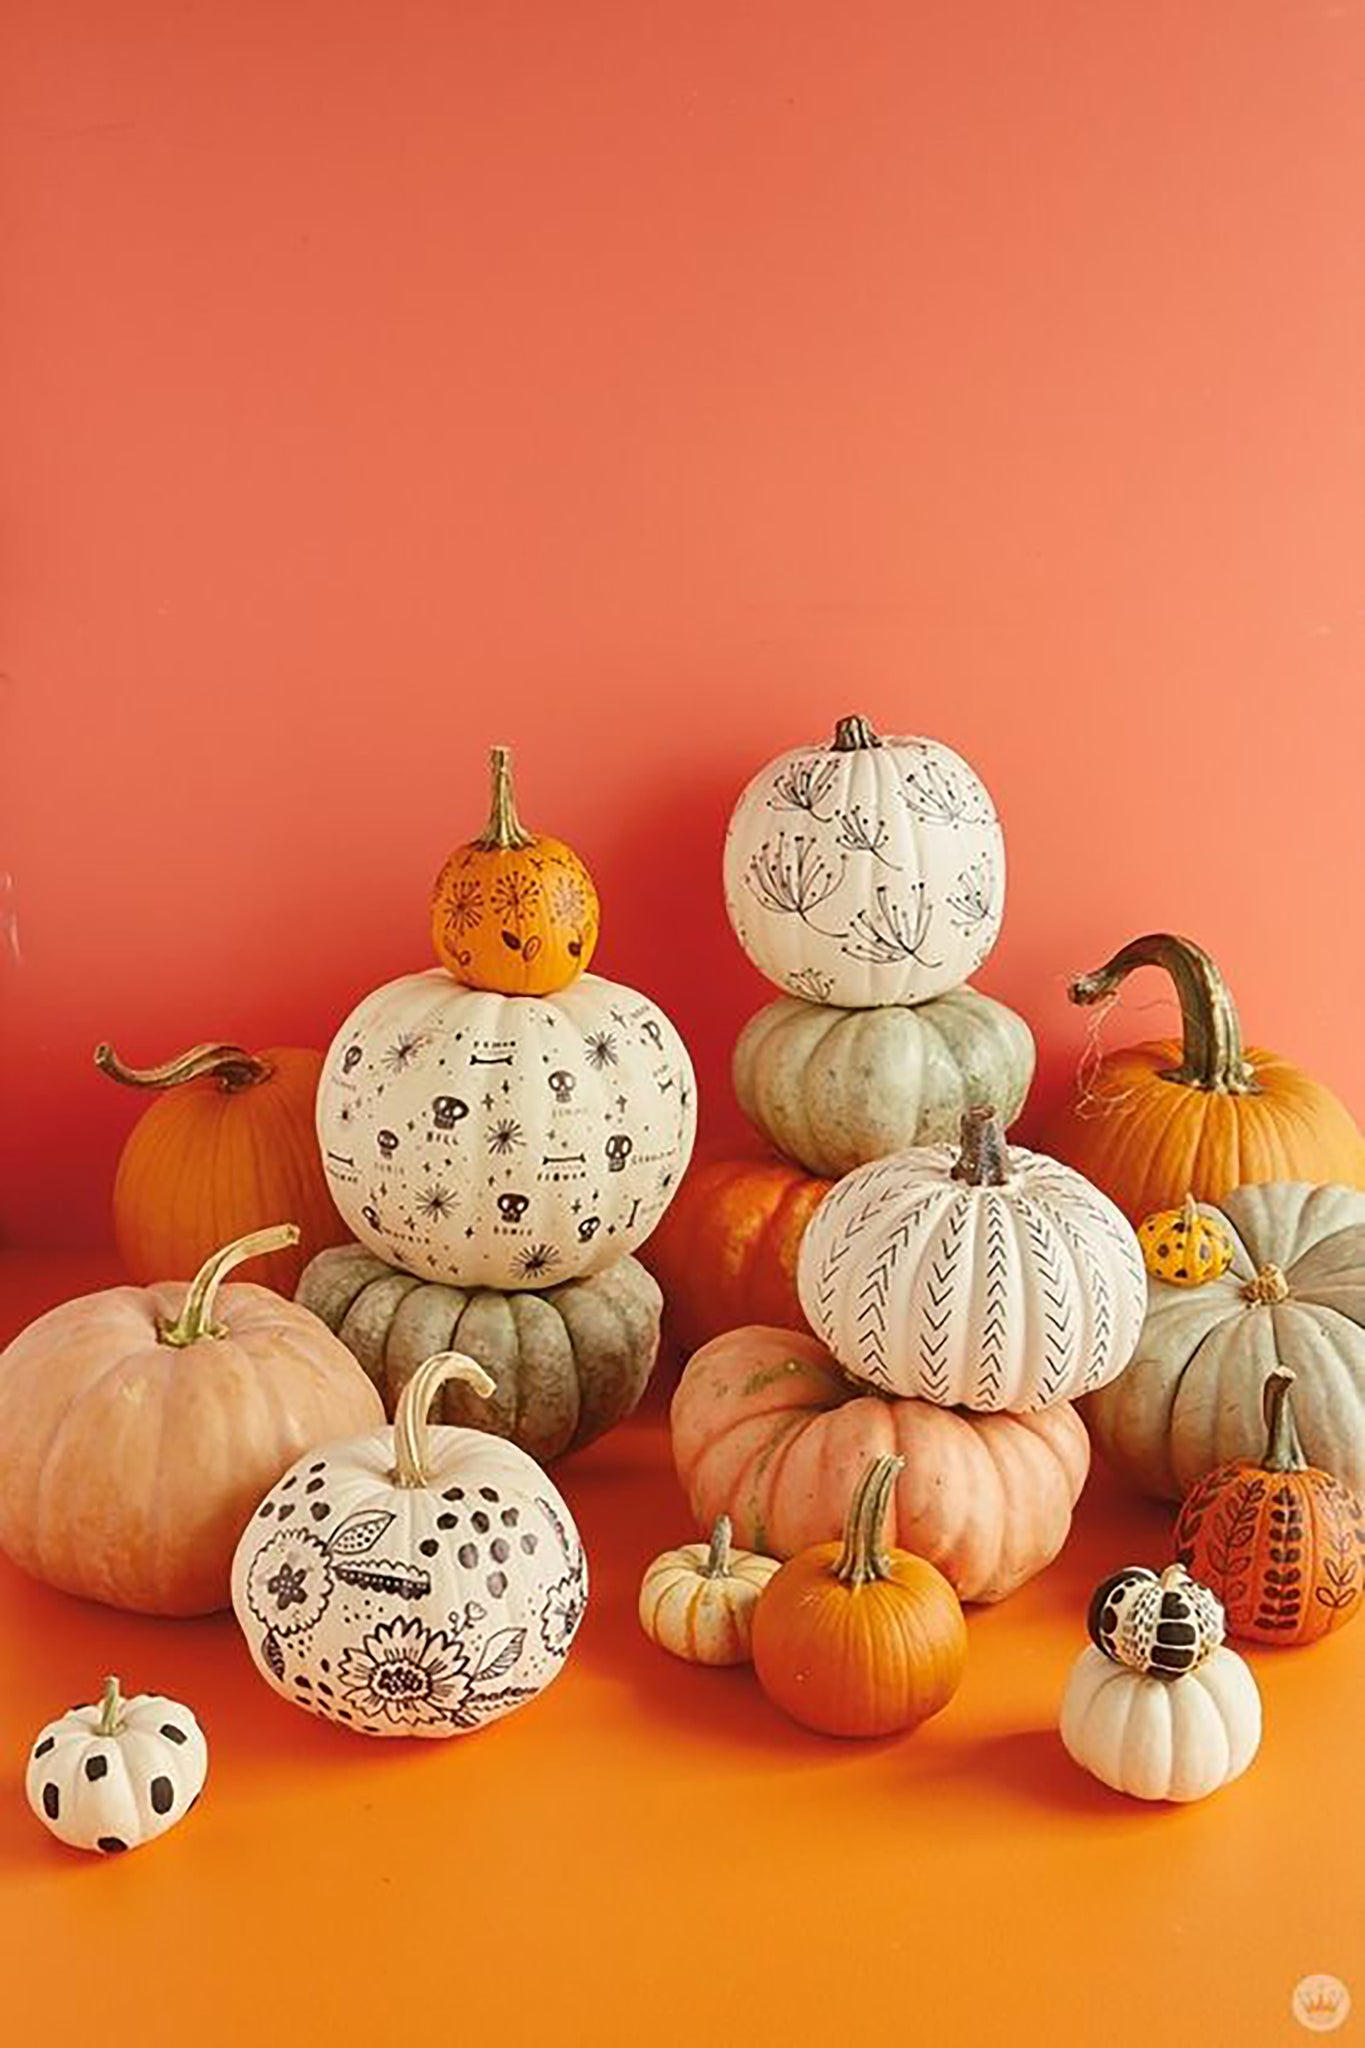 An arrangement of different sized painted pumpkins in front of an orange wall